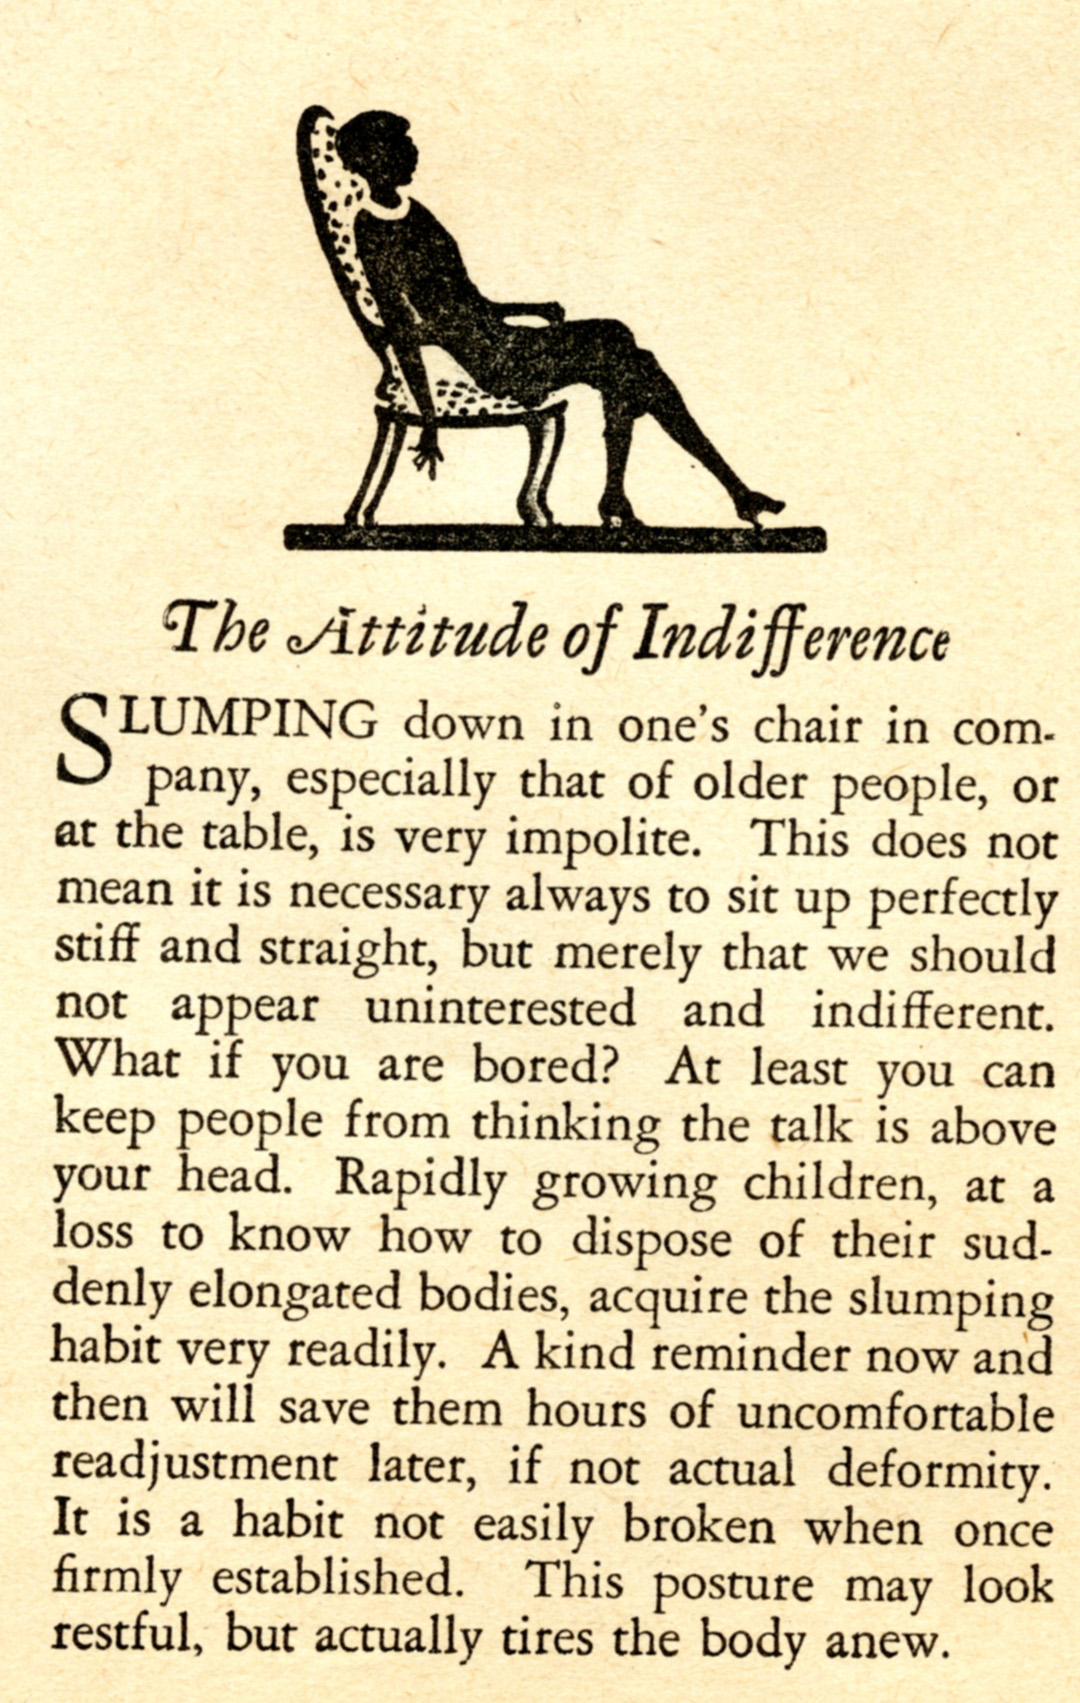 Favorite Vintage Advice: Attitude of Indifference